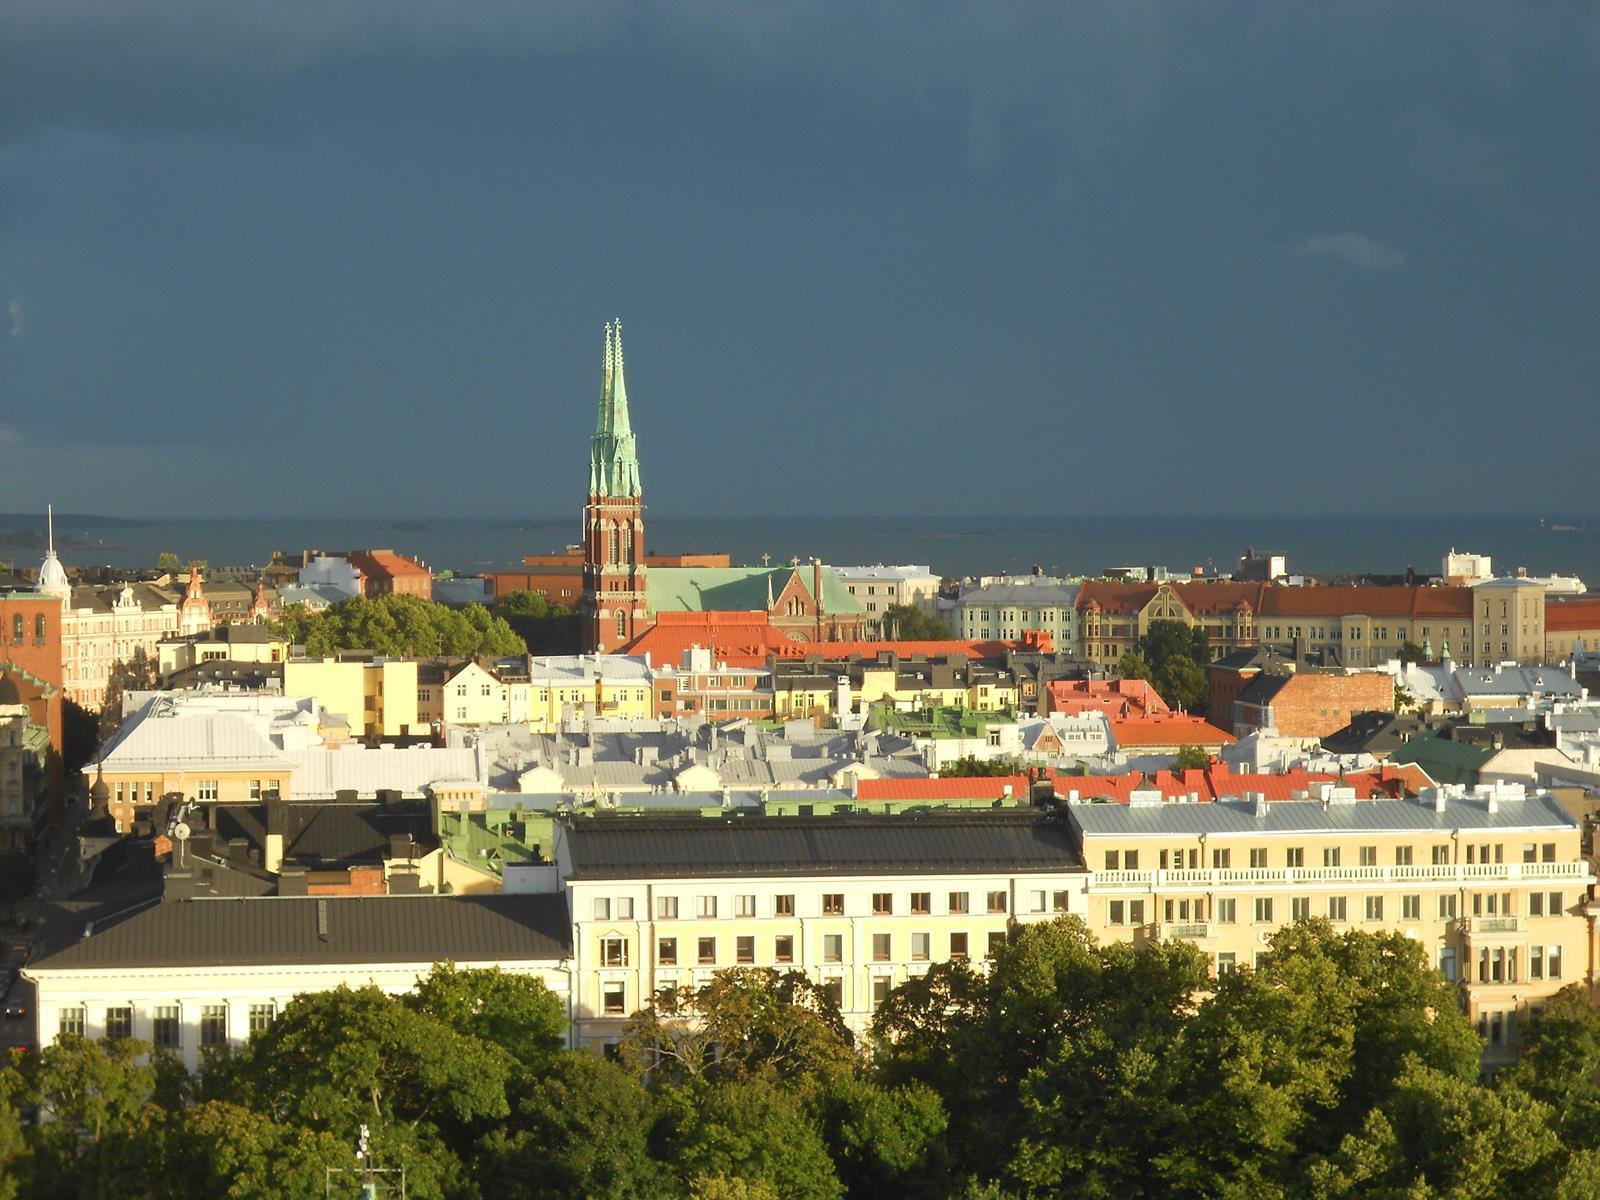 view over the roofs of Helsinki, FInland